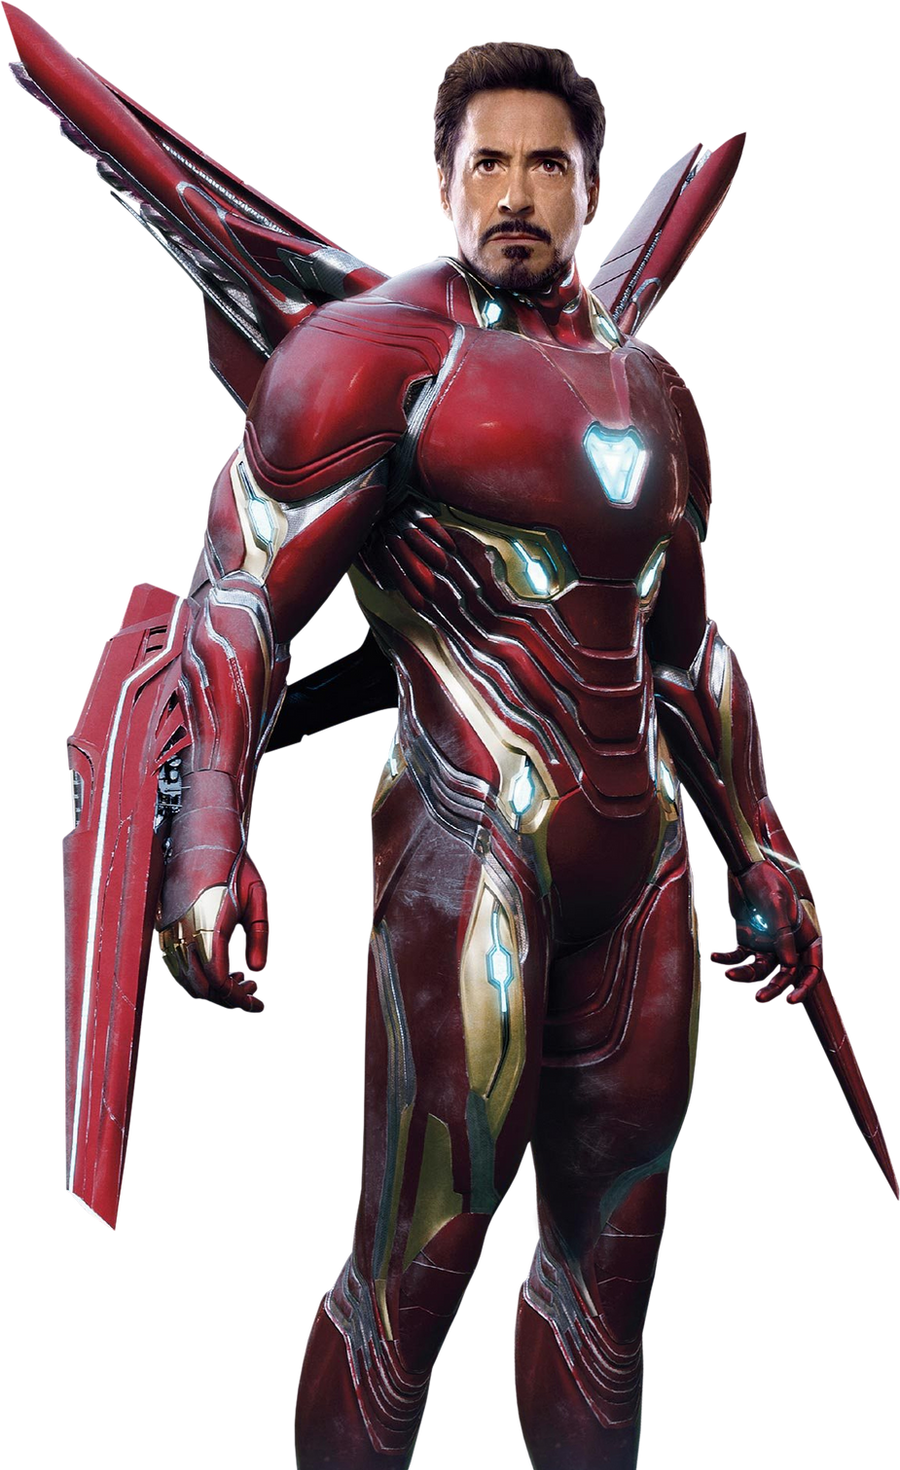 Iron Man: PNG 1158x1892 by sachso74 on DeviantArt